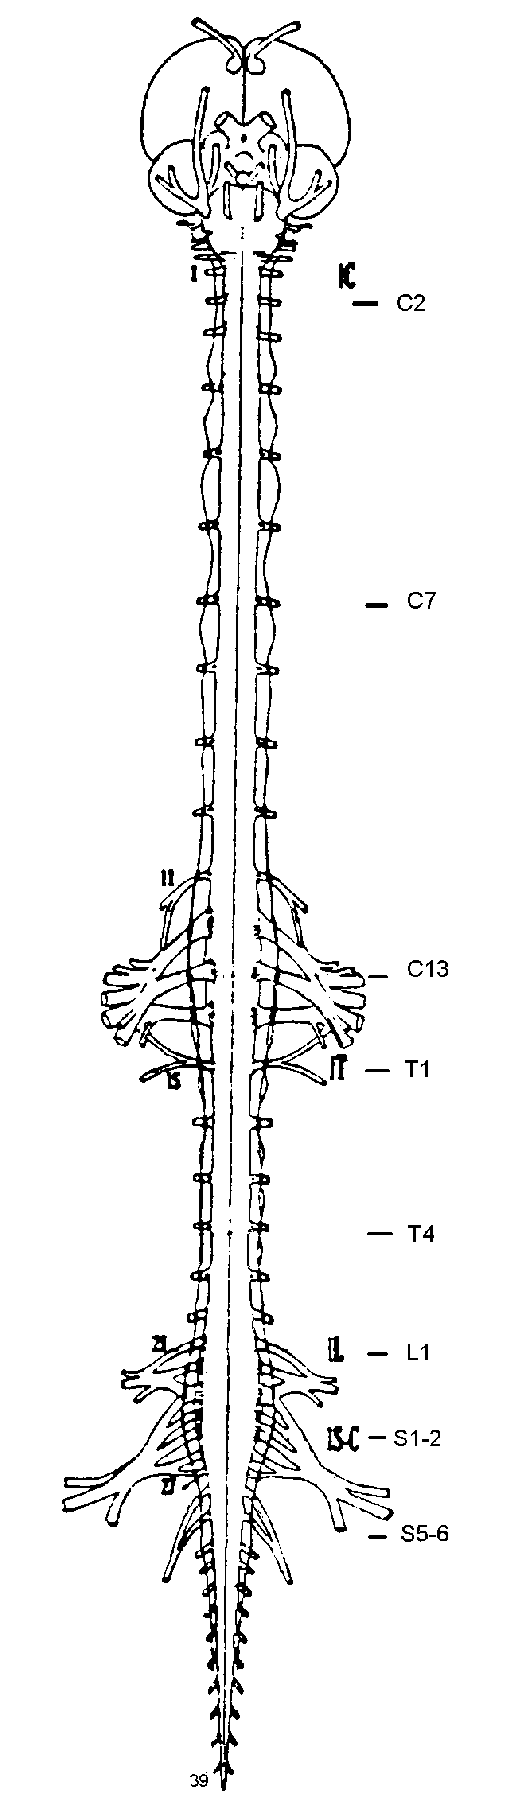 medium resolution of 11 central nervous system emerging cranial and spinal nerves and sympathetic trunk of the pigeon